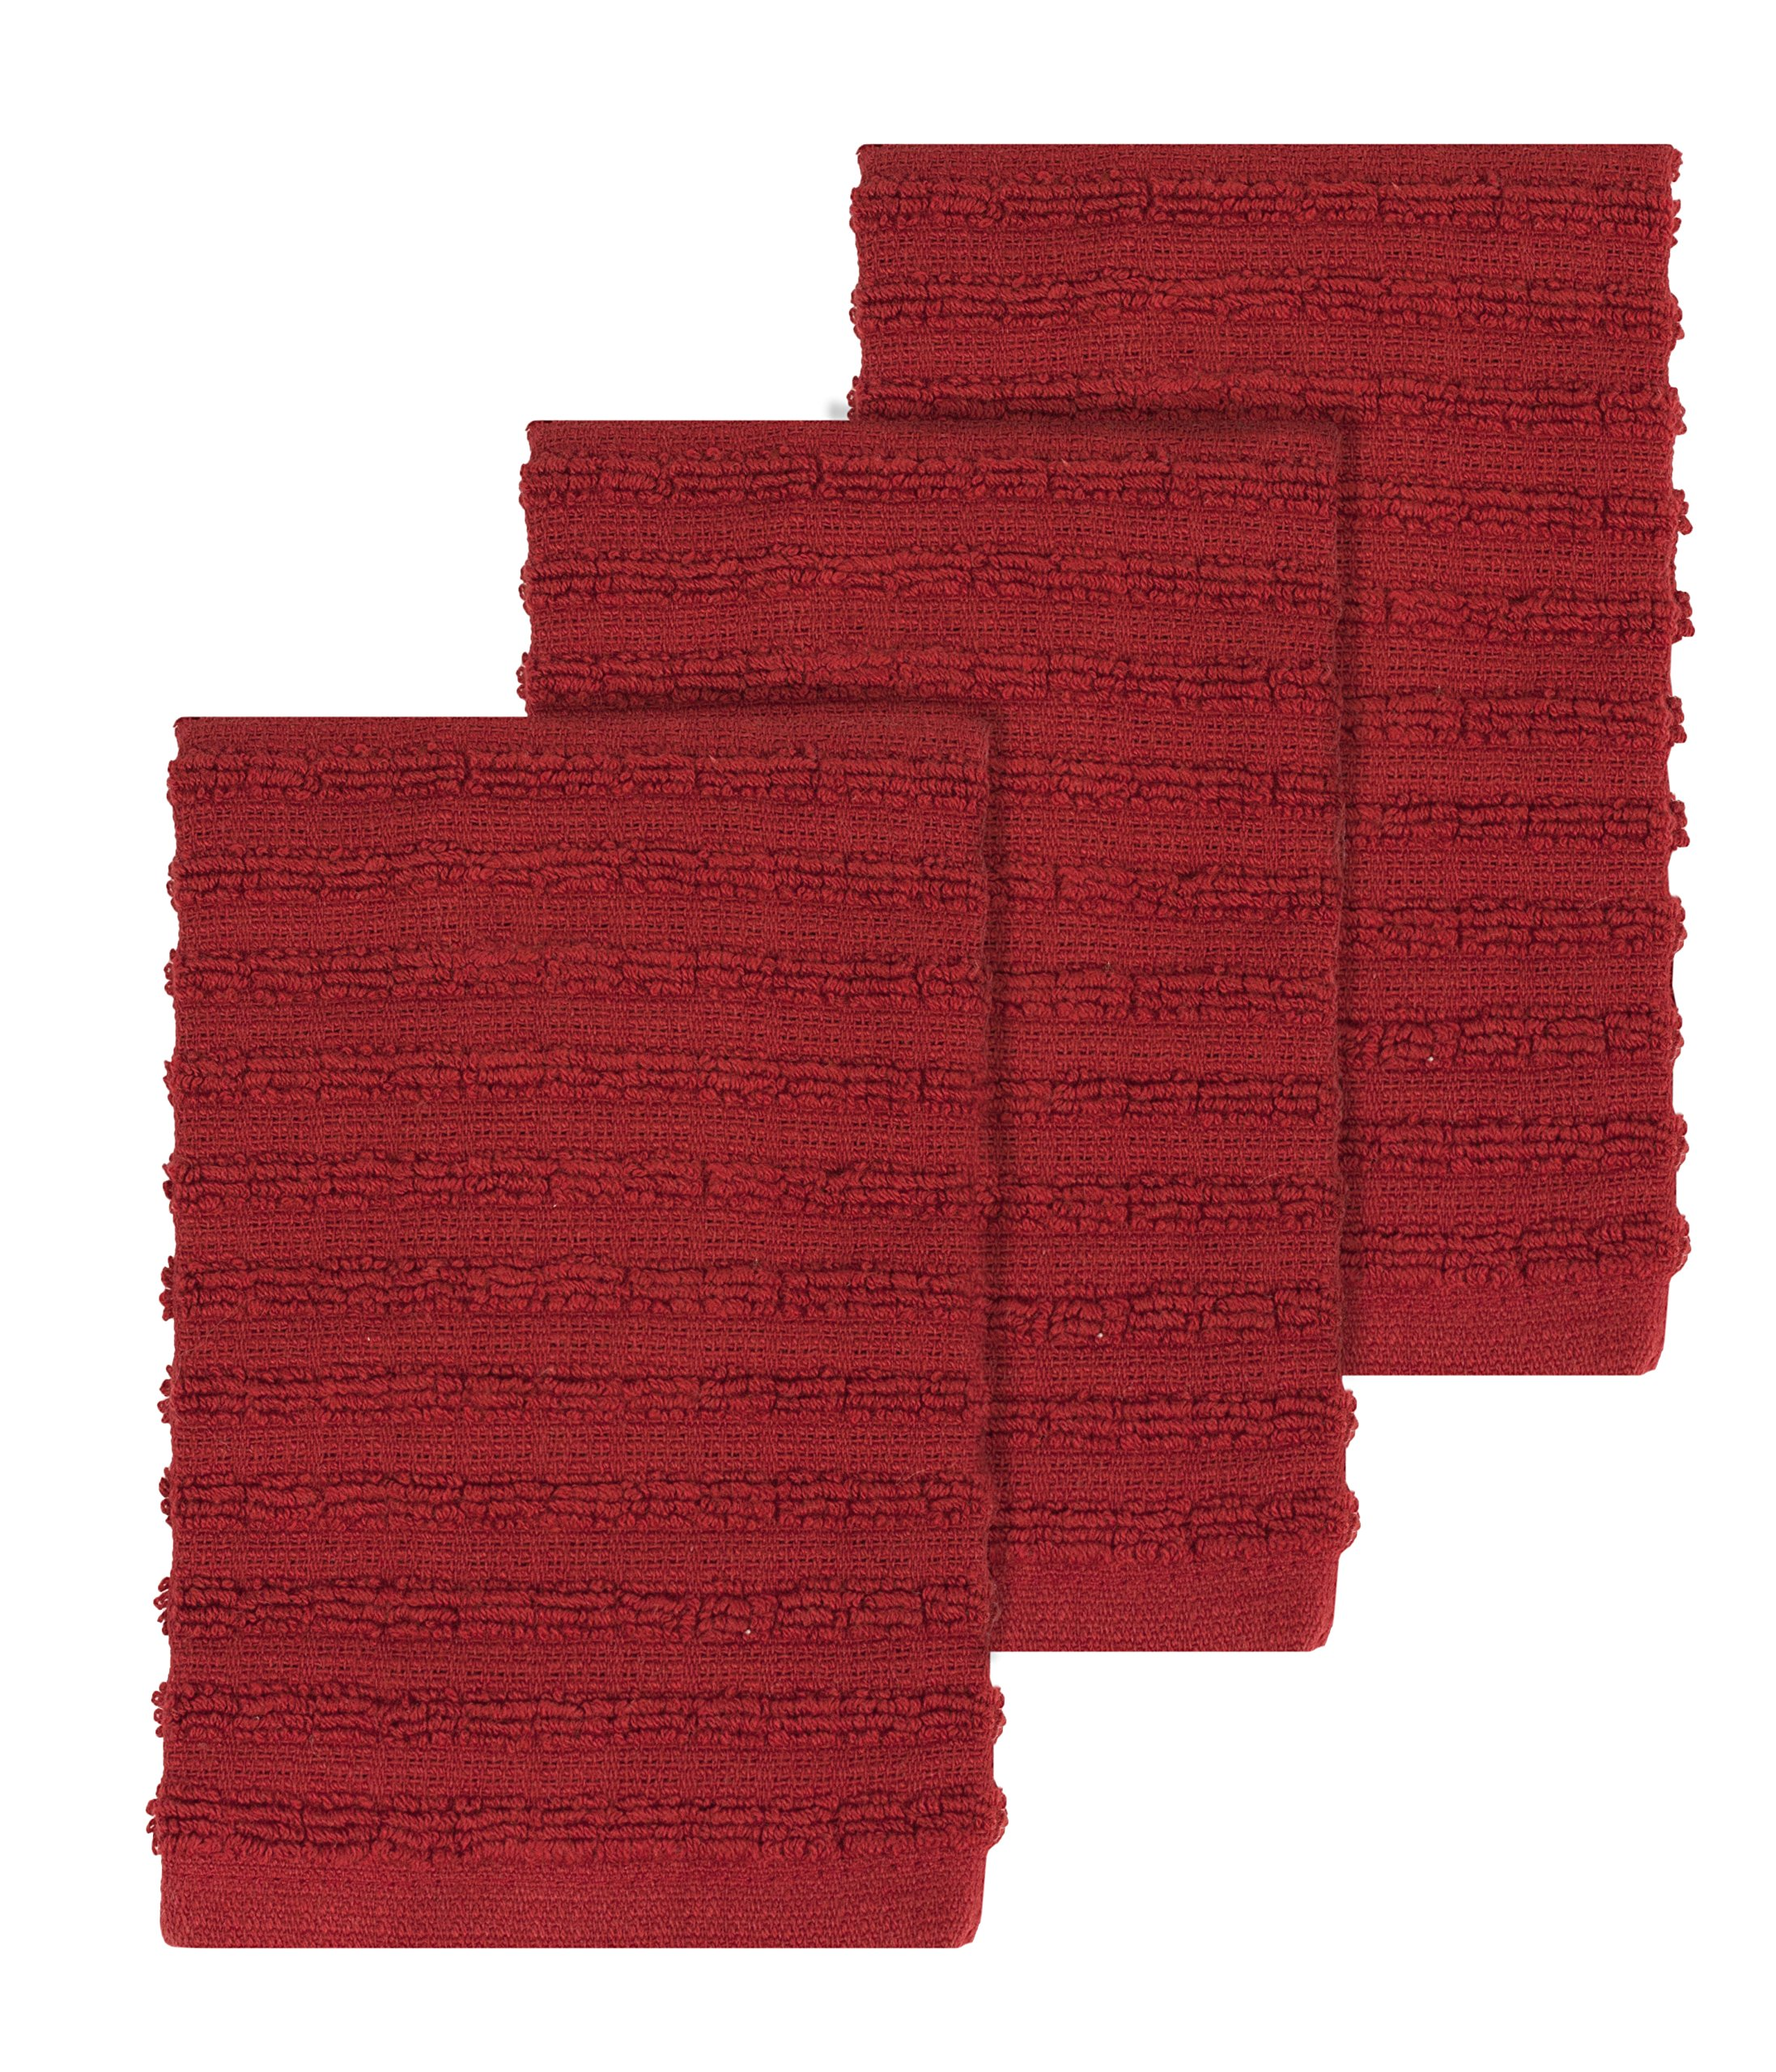 """Ritz Royale Collection 100% Combed Terry Cotton, Highly Absorbent, Kitchen Dish Cloth Set, 13-3/4"""" x 12"""", 3-Pack, Solid Paprika Red"""